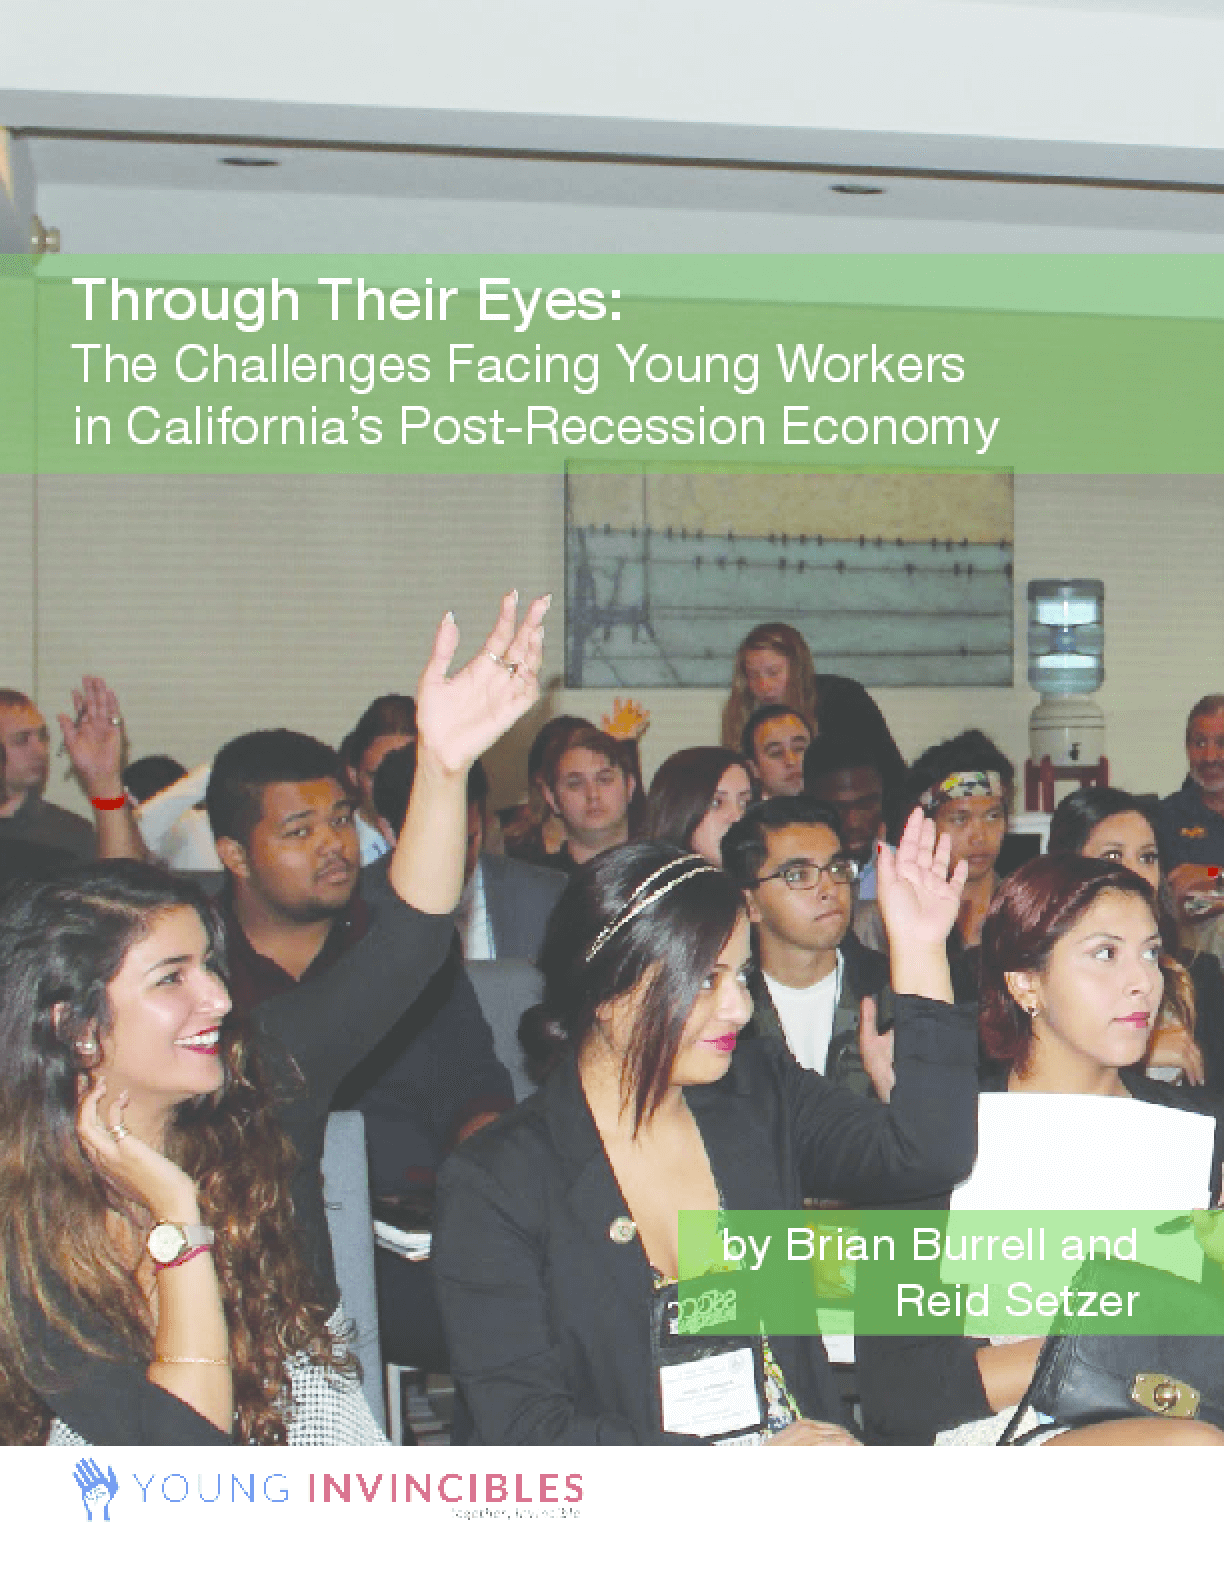 Through Their Eyes: The Challenges Facing Young Workers in California's Post-Recession Economy